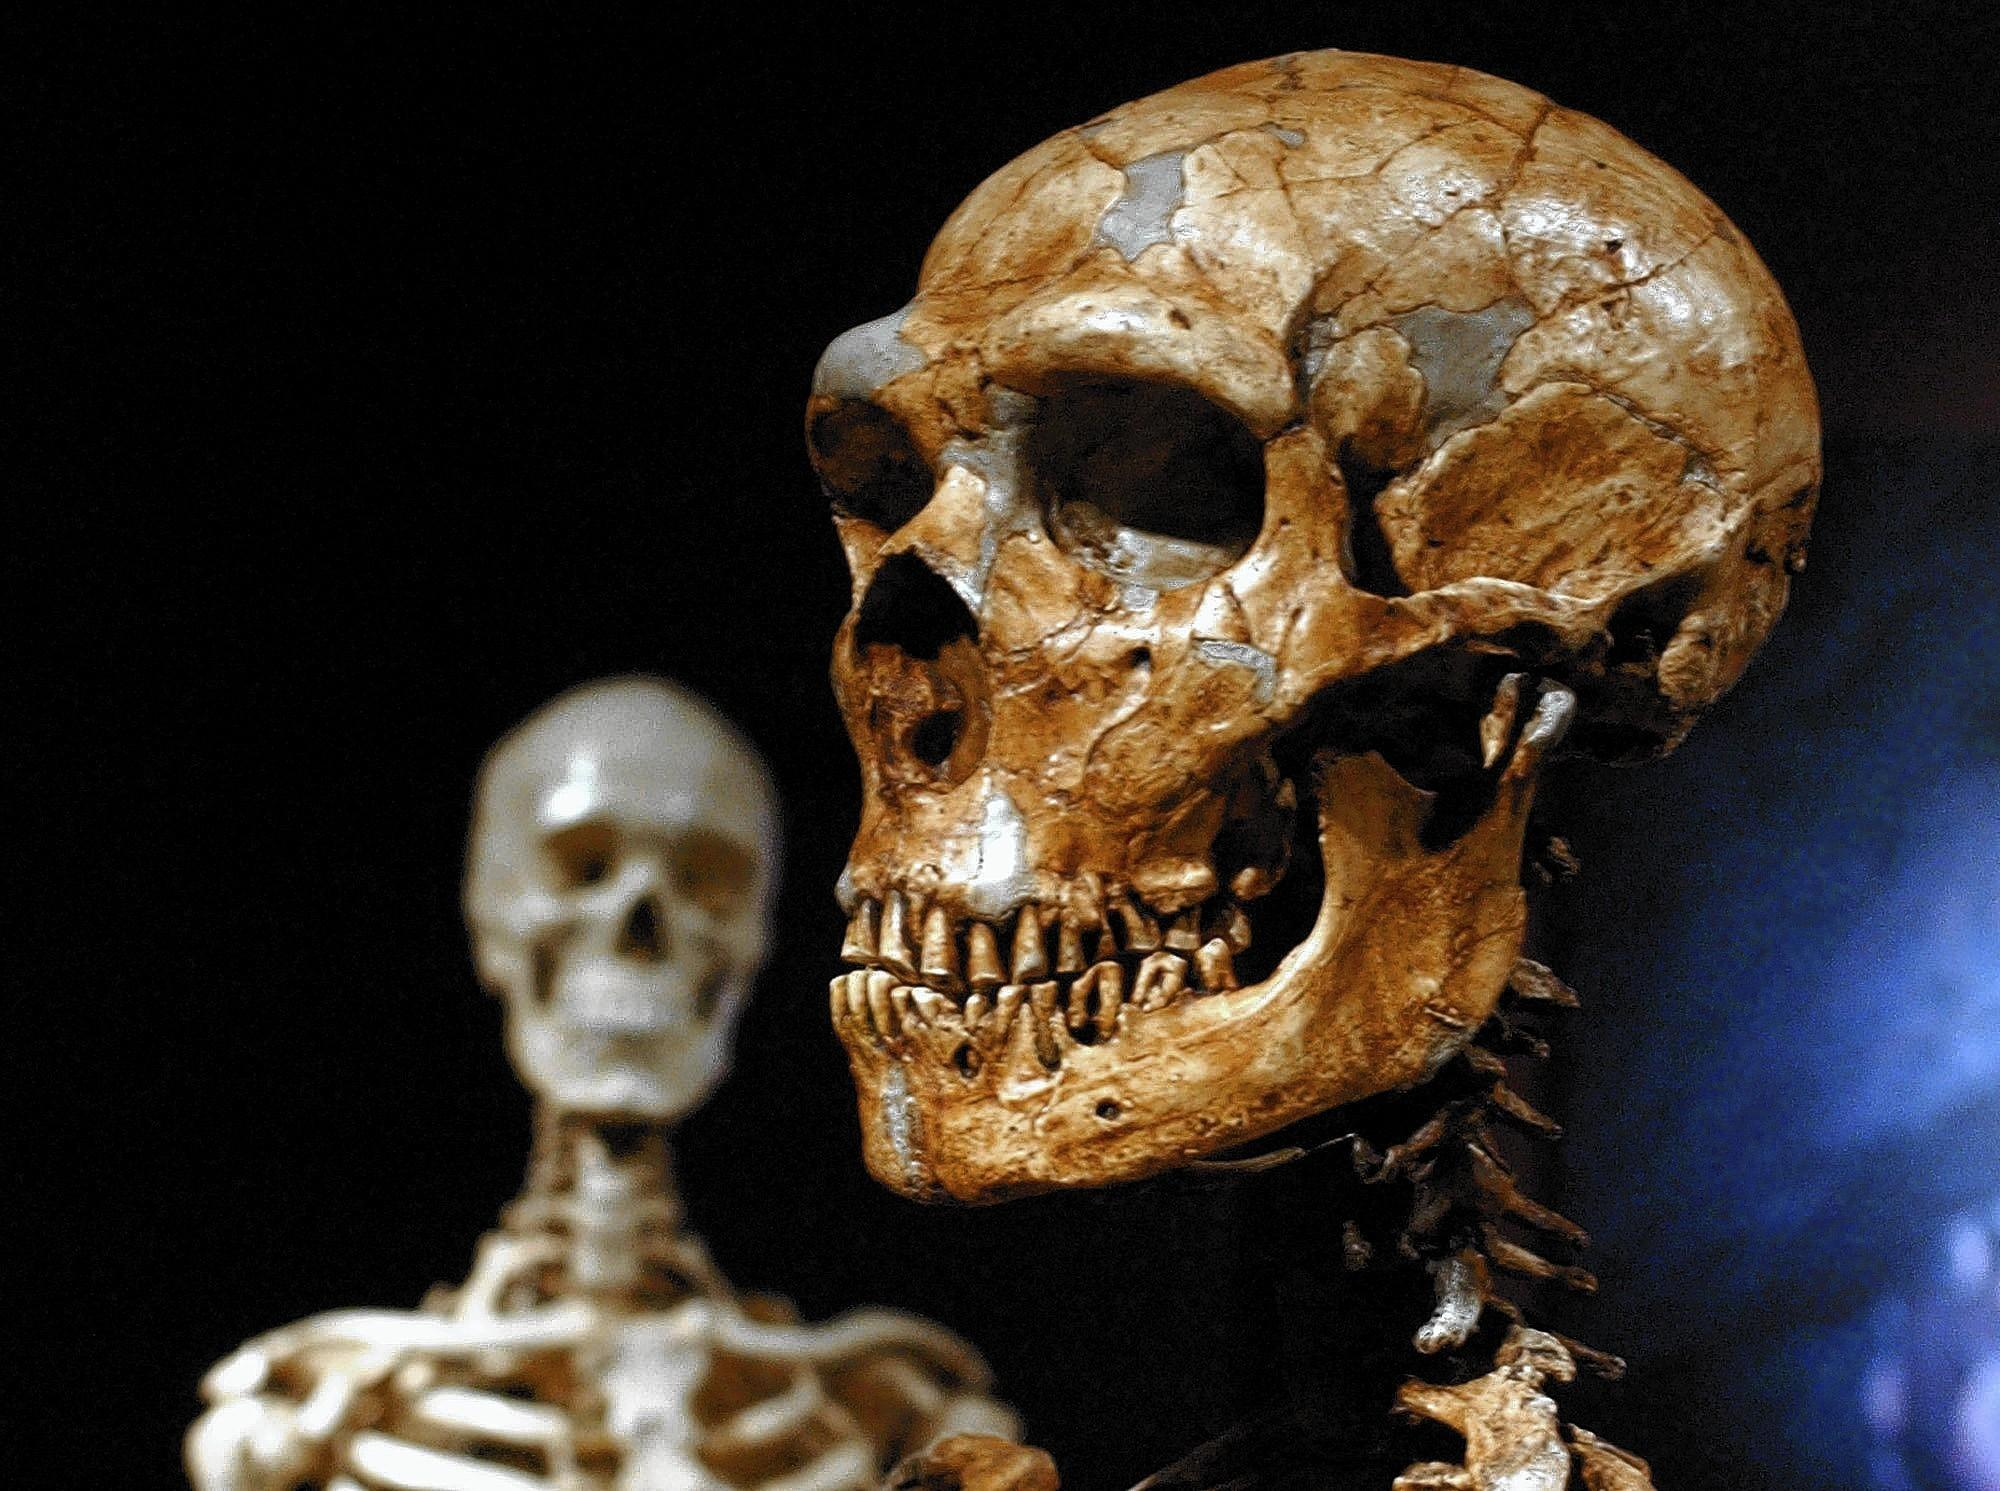 A reconstructed Neanderthal skeleton, foreground, is shown with a modern human skeleton. New studies indicate that long strands of Neanderthal DNA have survived in modern humans of European and East Asian descent.